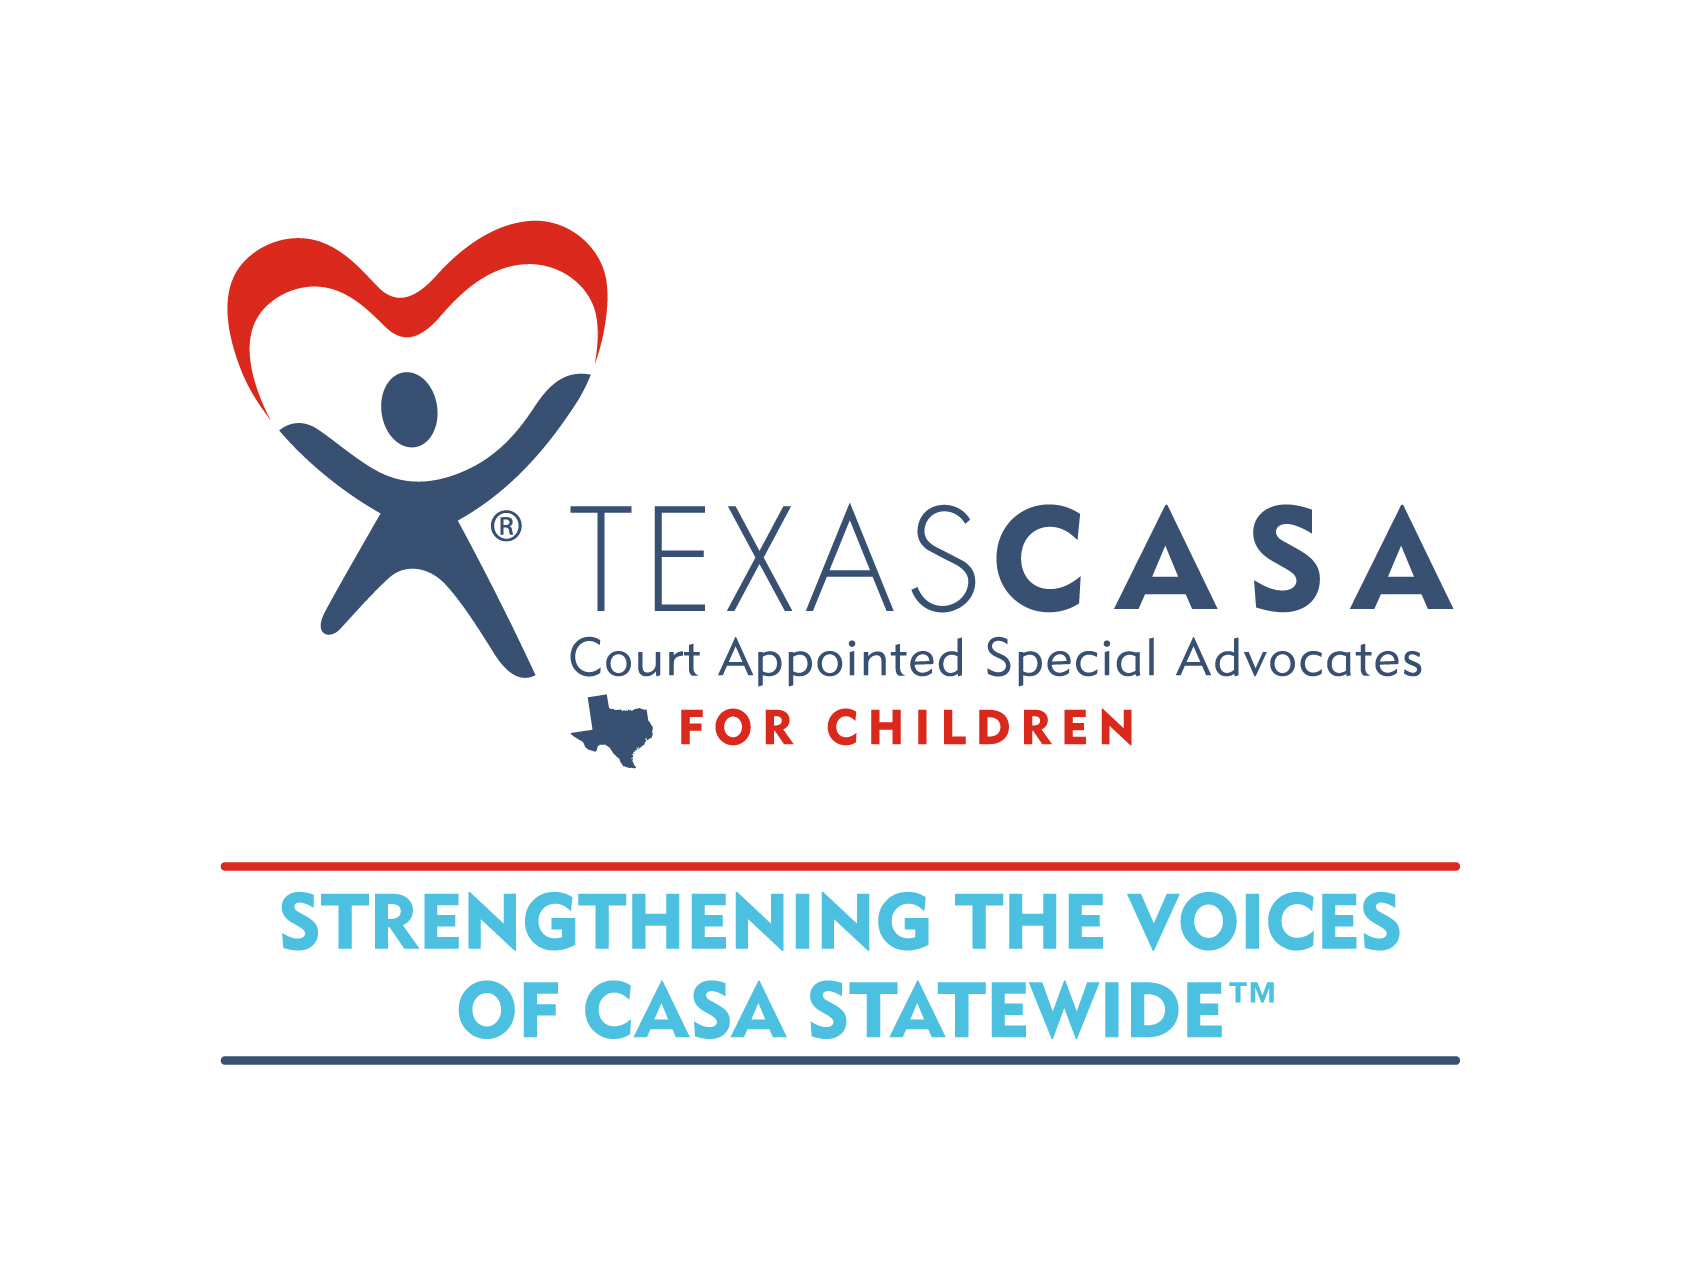 TX_CASA_LogoRefresh_Horizontal_RGB_Stacked